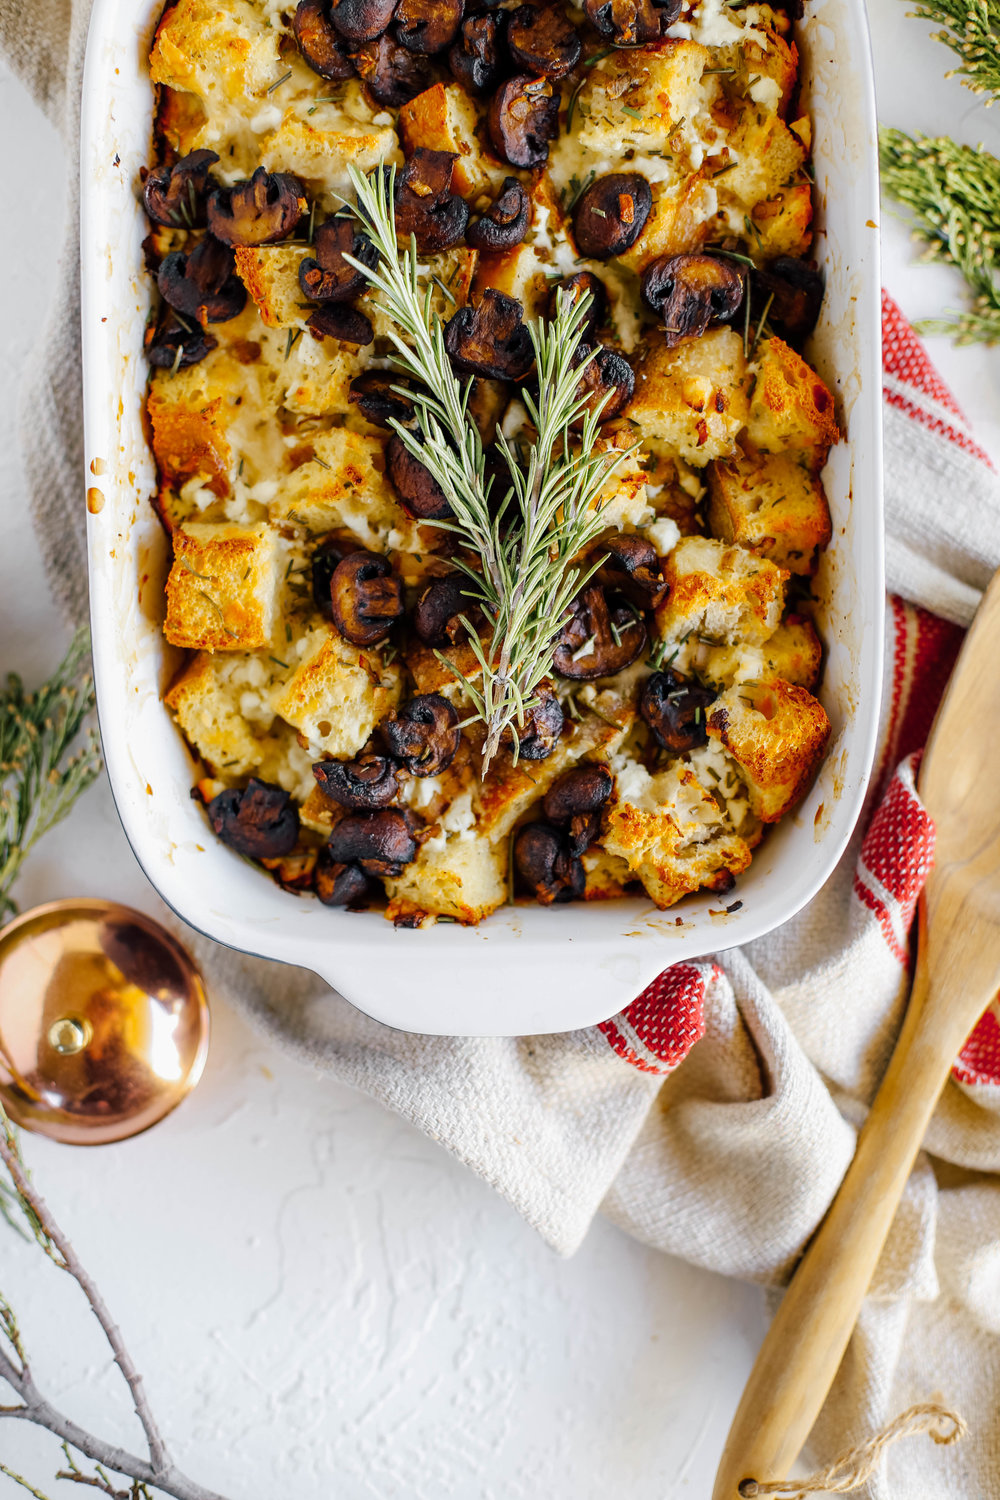 Brown Butter Mushroom and Goat Cheese Strata-10.jpg